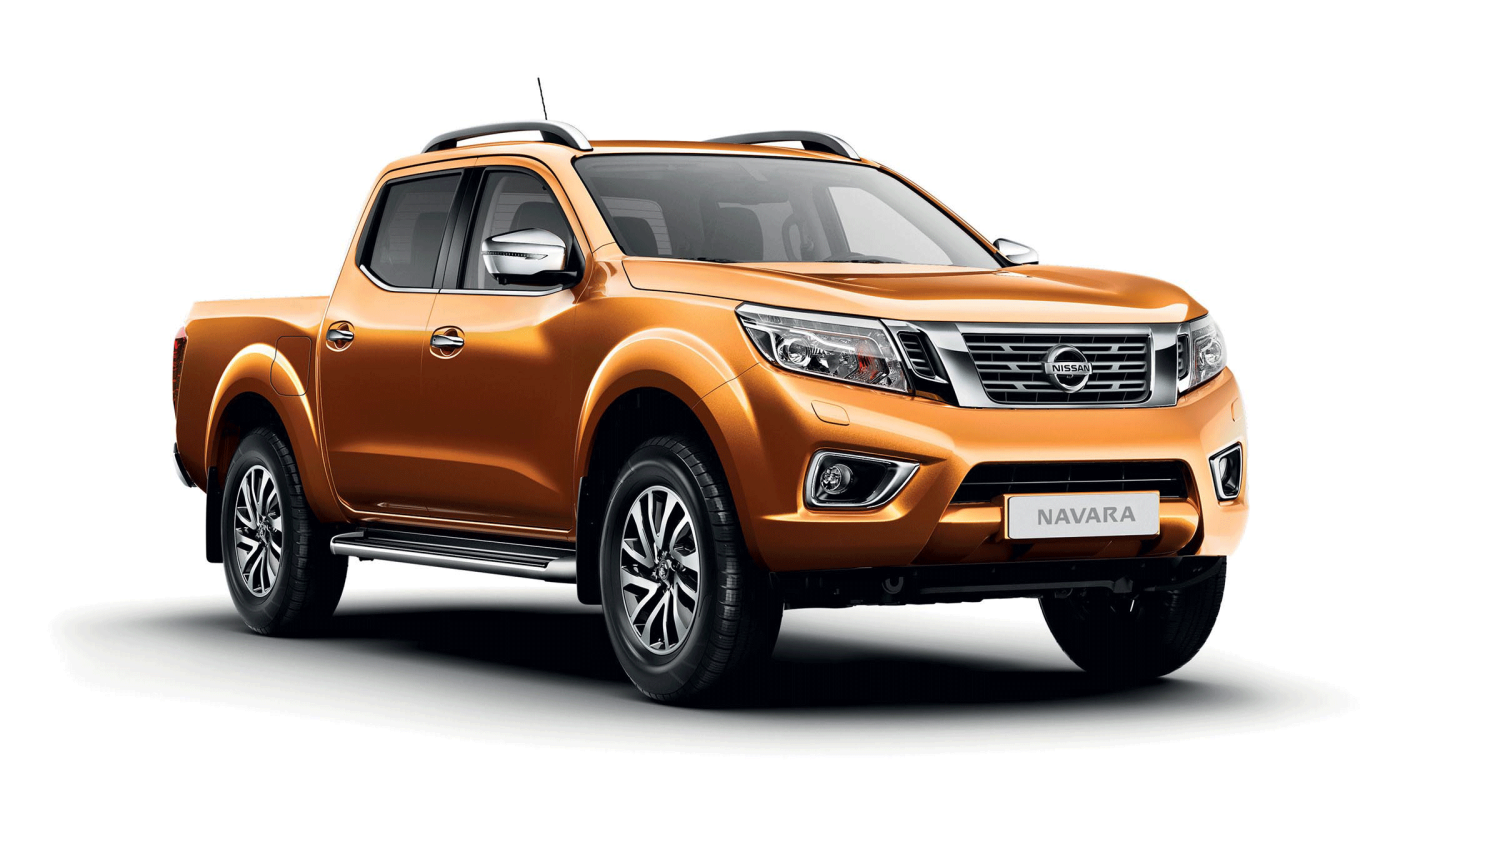 Nissan NAVARA Earth Bronze